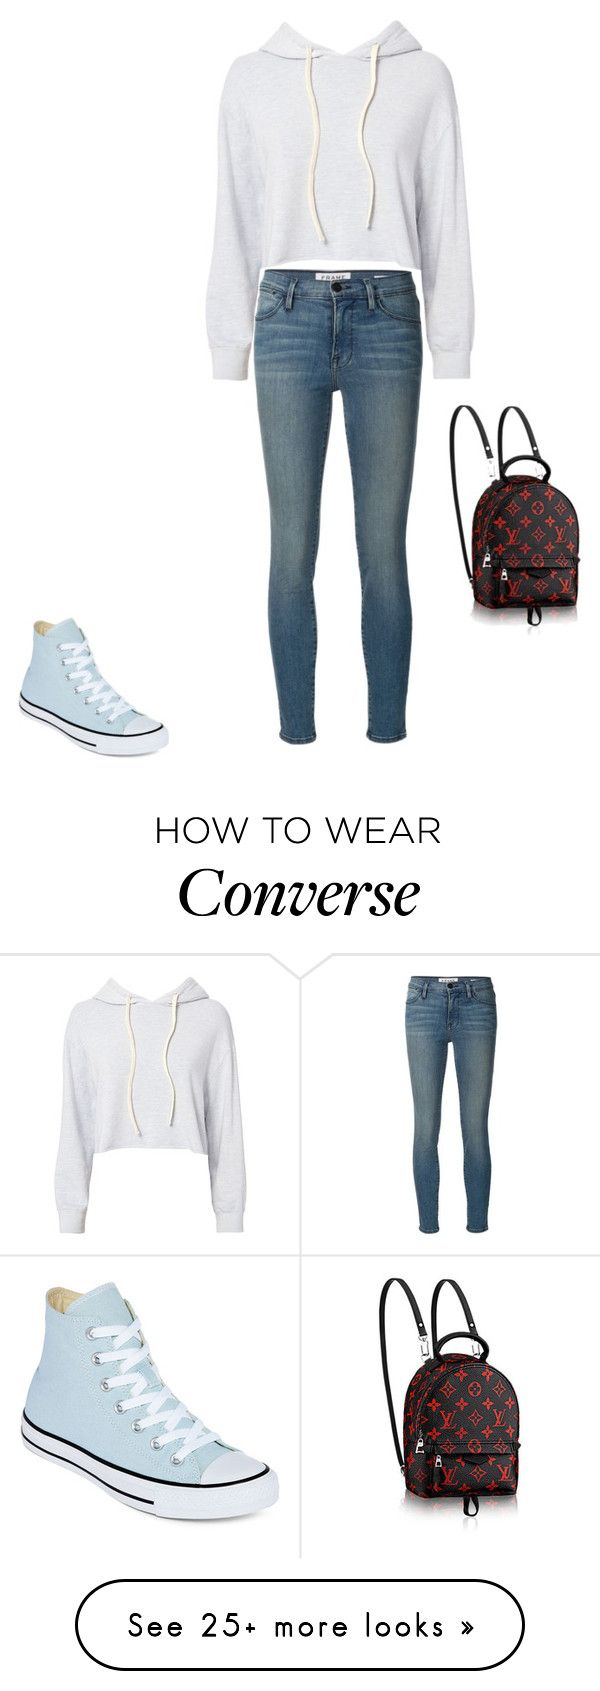 """""""Untitled #16750"""" by explorer-14576312872 on Polyvore featuring Monrow, Frame and Converse"""